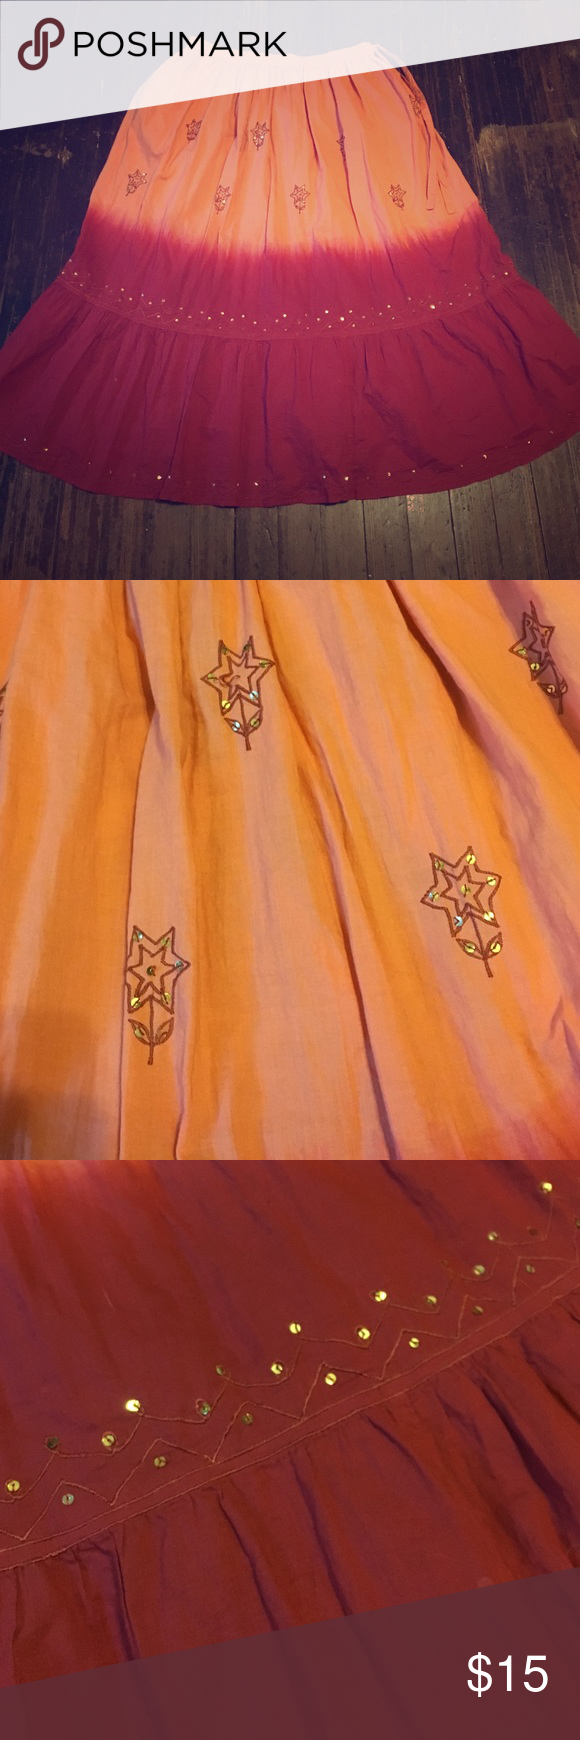 Embroidered and sequined beautiful ombré skirt Gorgeous ombré orange to red skirt with embroidery and sequin accents. Venezia Skirts Circle & Skater